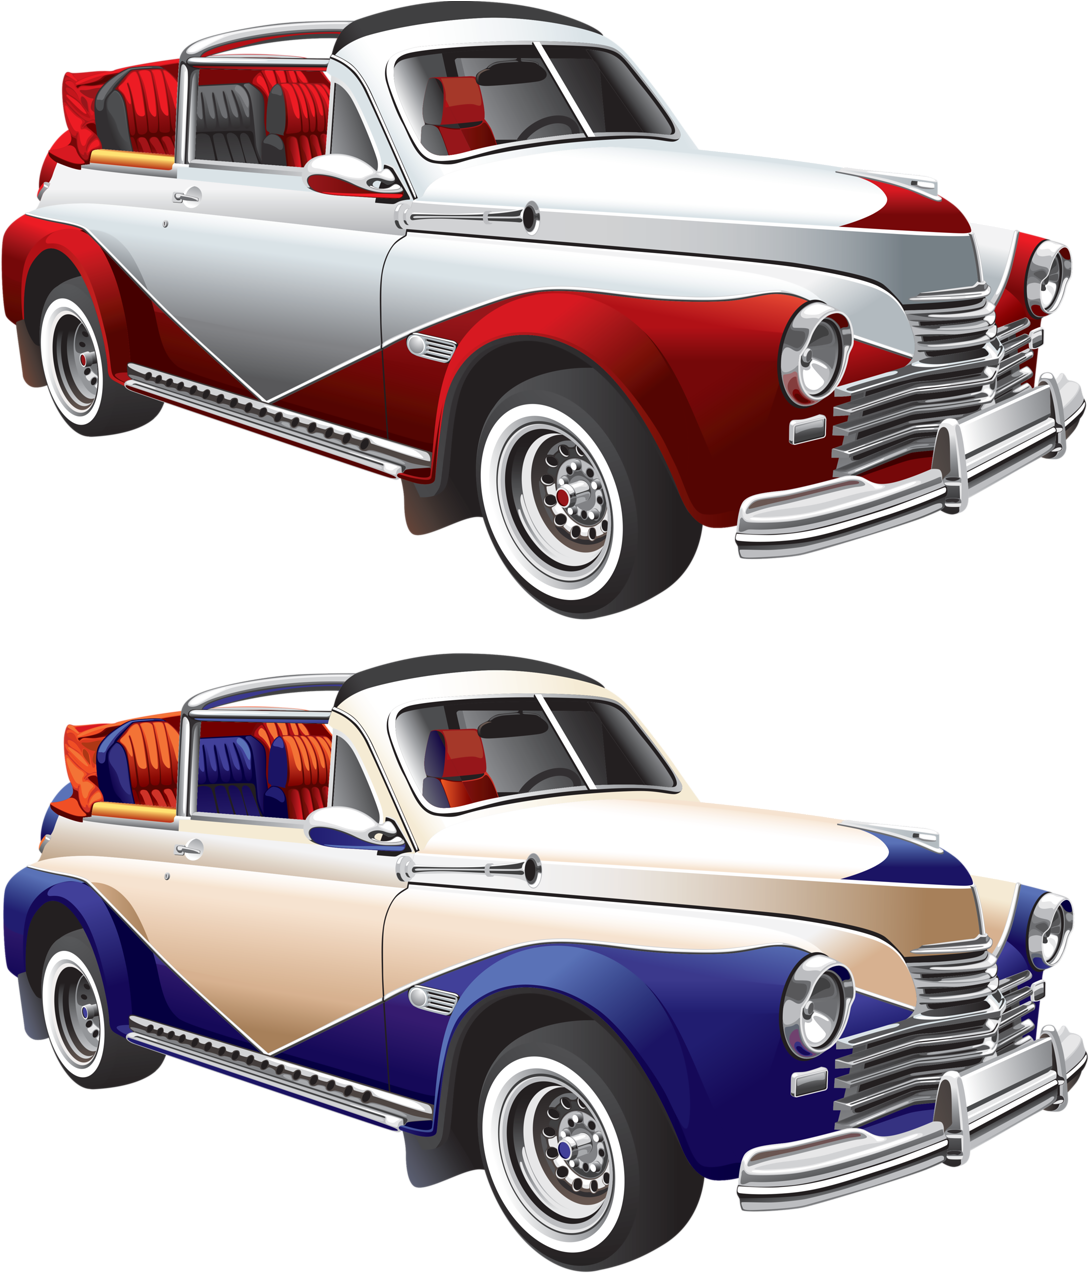 Download Fotki Car Drawings Detailed Image Hot Rods Cool Vector Graphics Png Image With No Background Pngkey Com